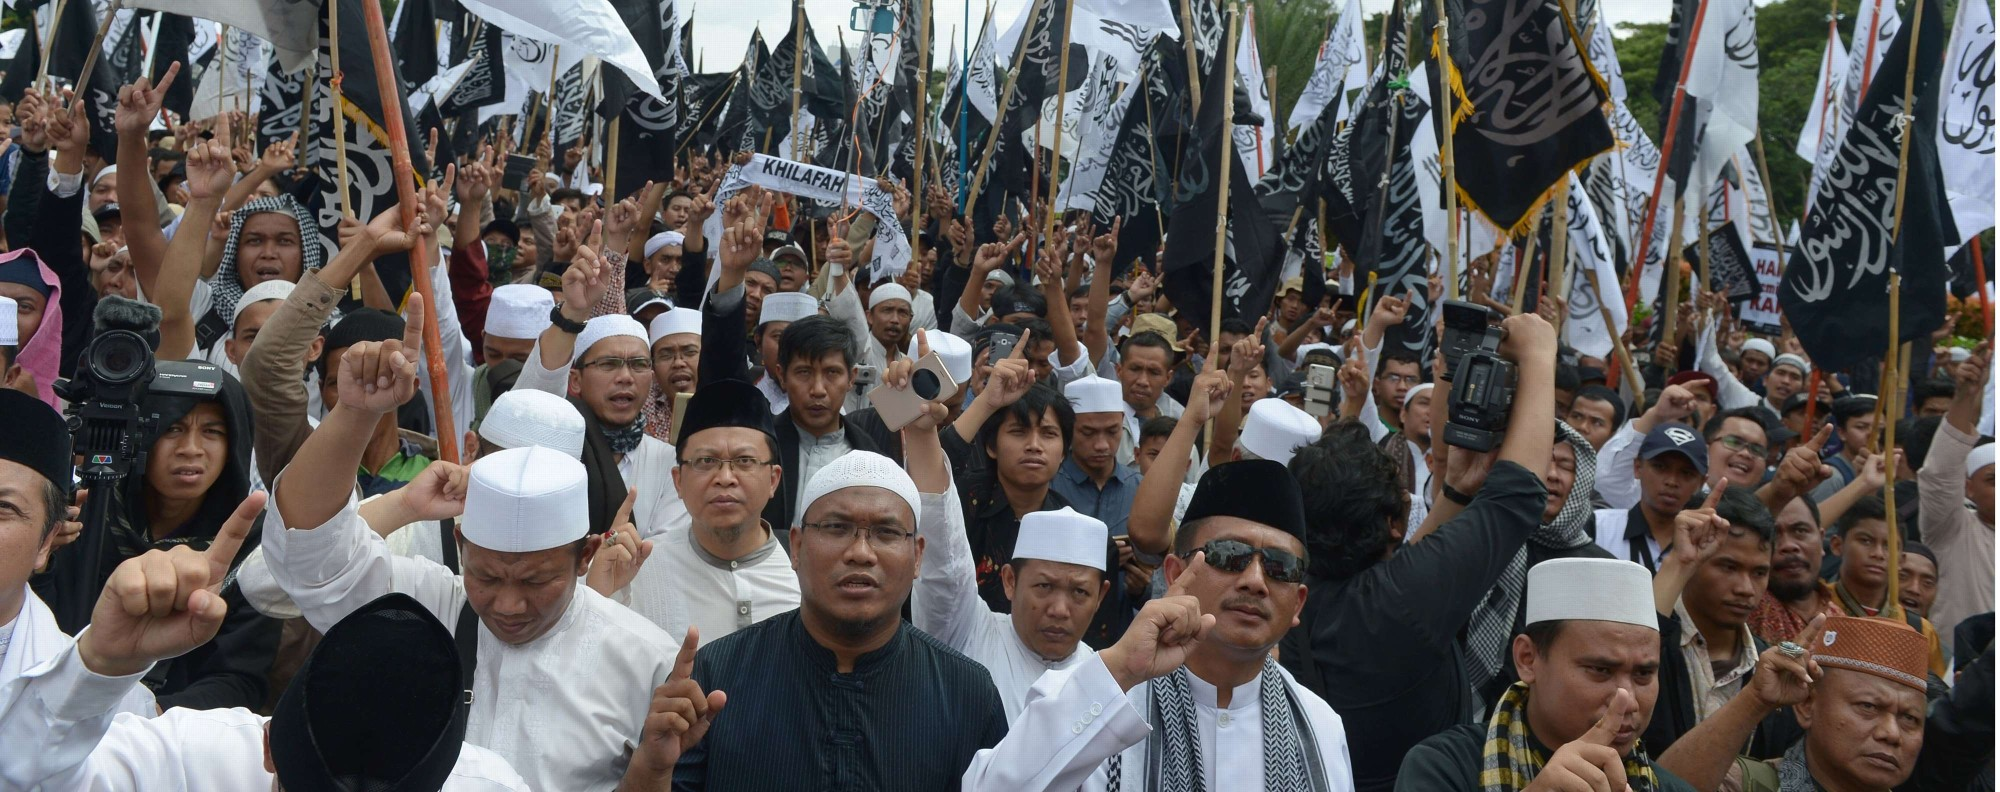 Indonesians demonstrate in support of Muslim clerics in Jakarta. Photo: AFP